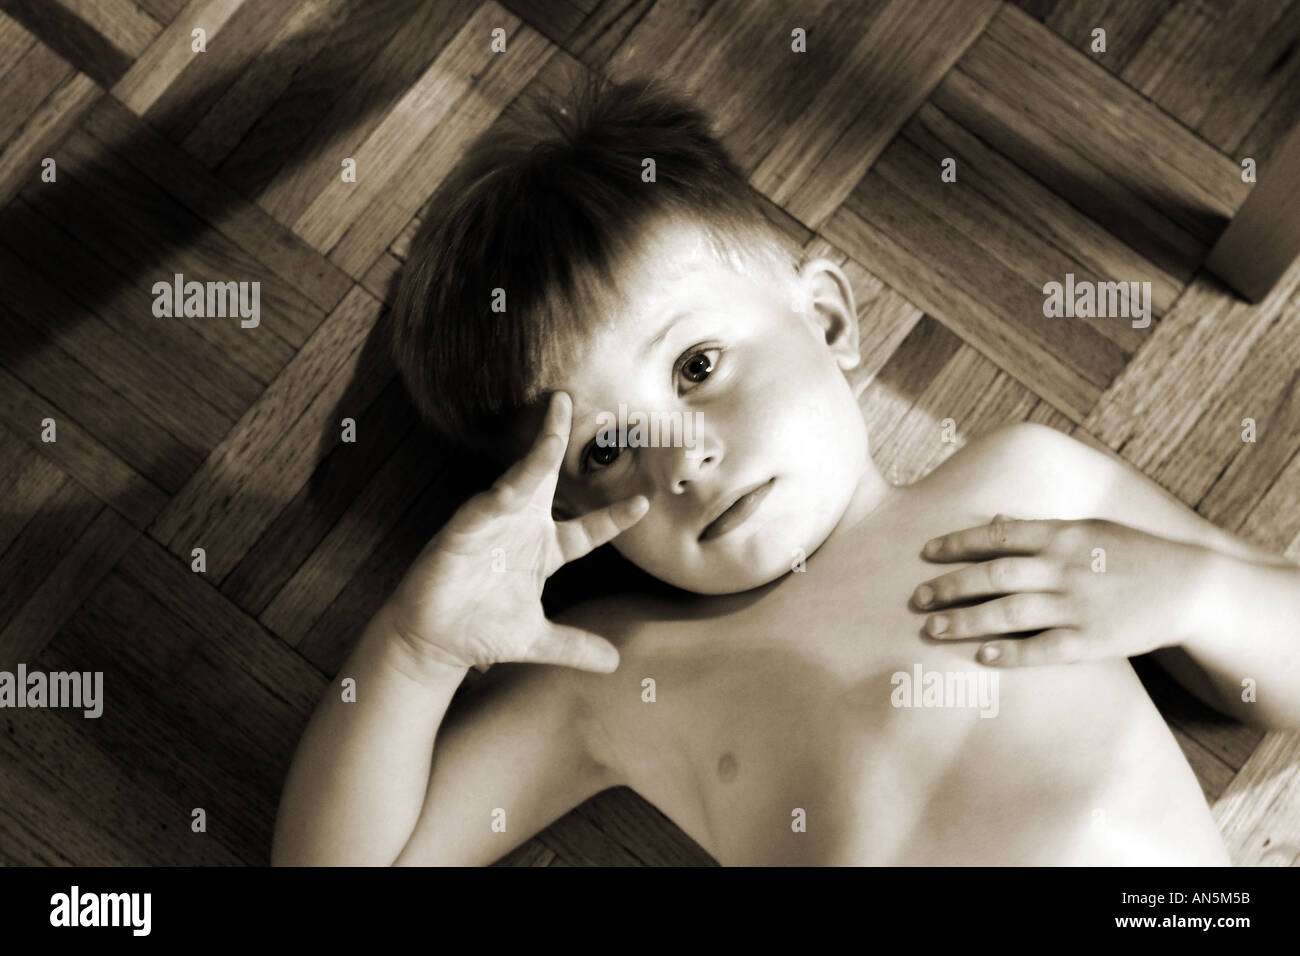 Child looking into camera with serious look, laying on floor looking up. Sepia Toned Black and White. - Stock Image